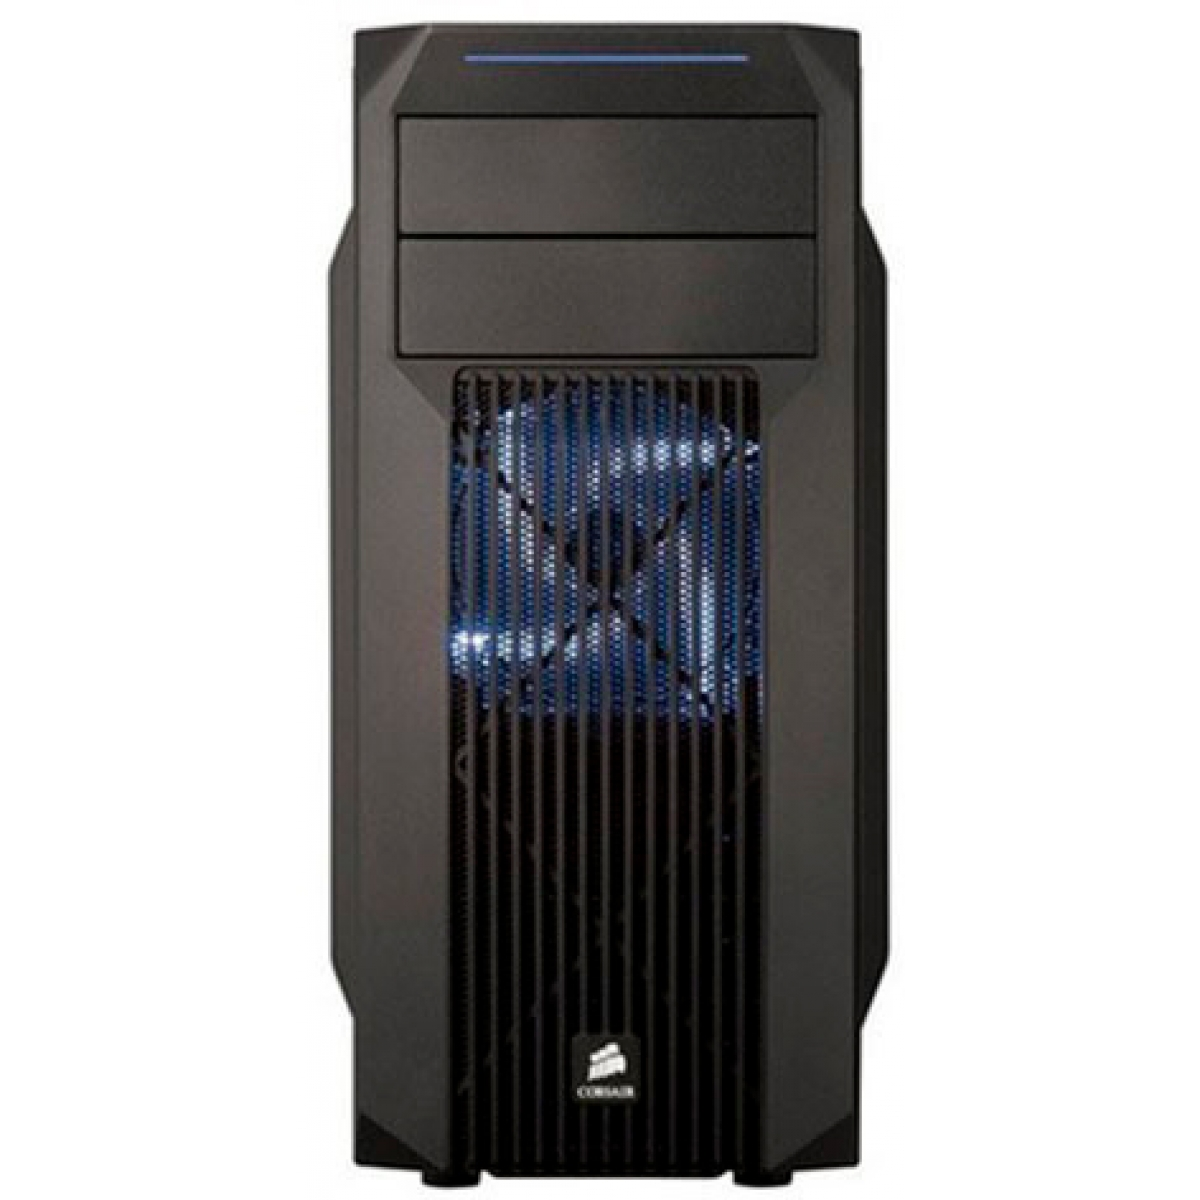 Gabinete Gamer Corsair Carbide SPEC-02, Mid Tower, Com 2 Fans, Lateral em Acrílico, Black, S-Fonte, CC-9011057-WW